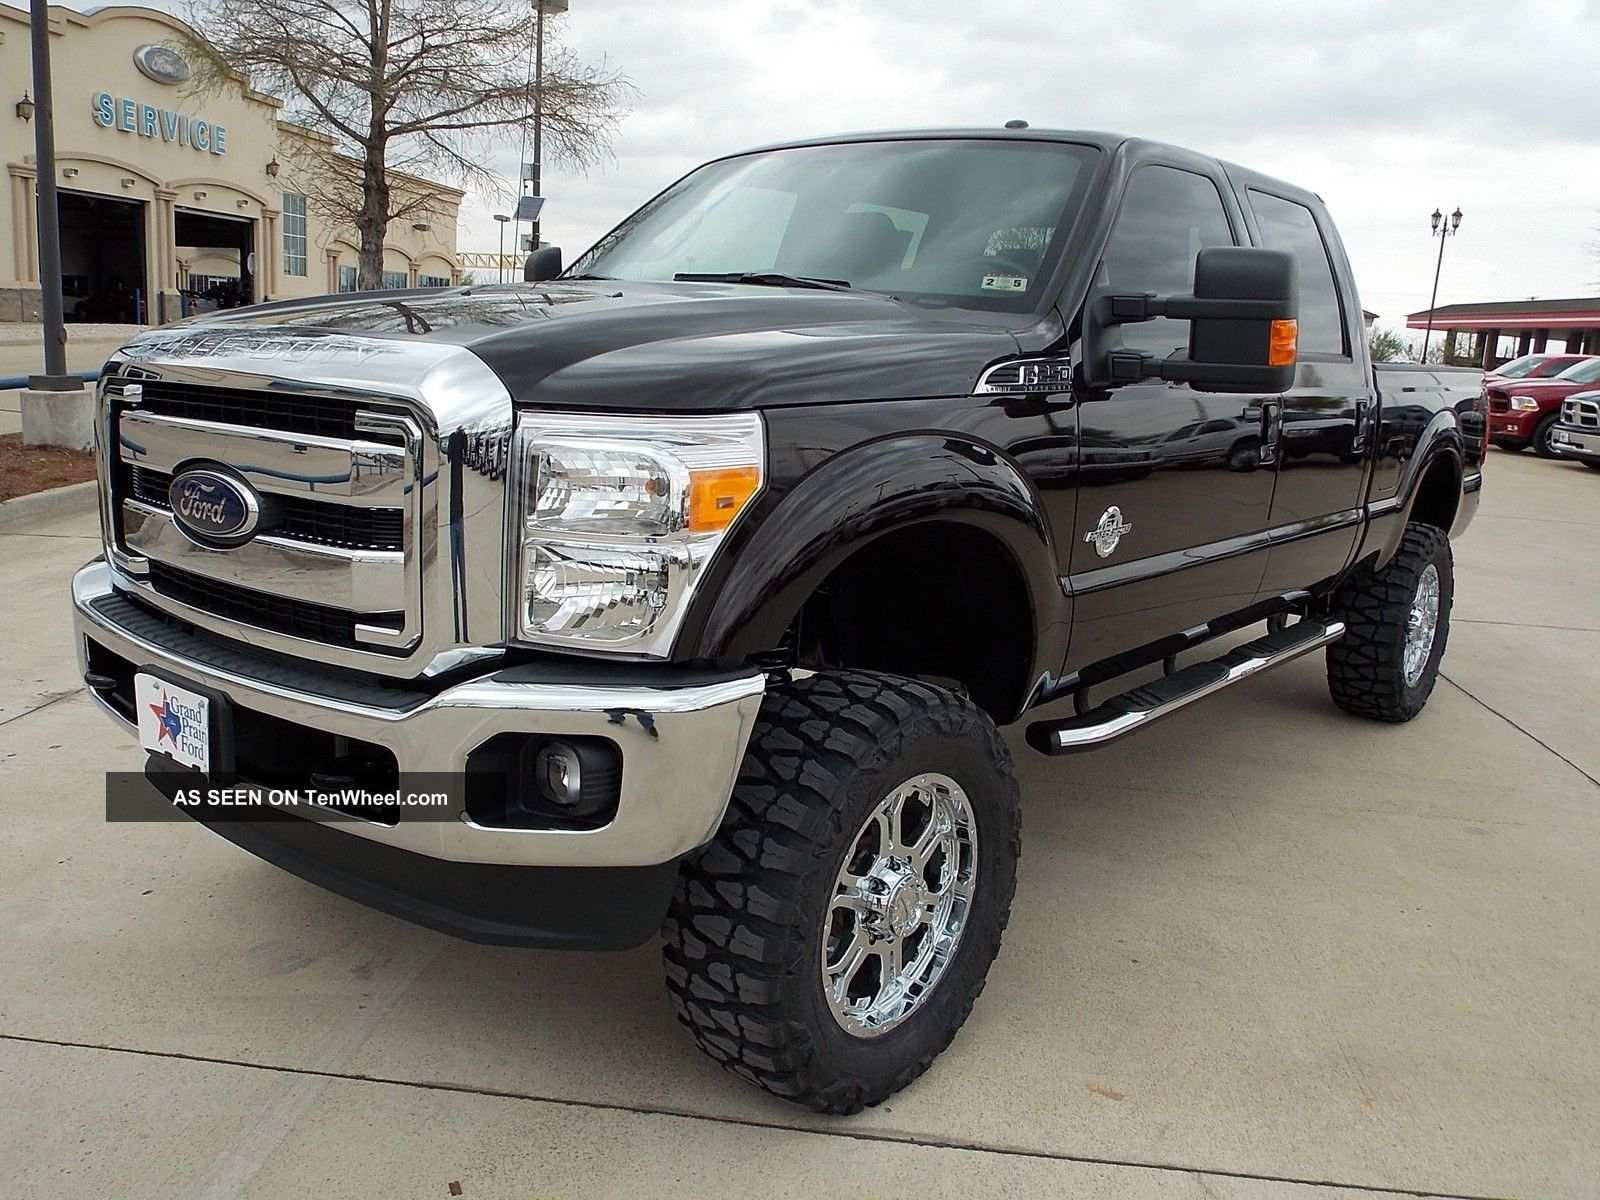 2013 ford f 250 crewcab lariat 4x4 6 39 lift 35 tires 20 39 wheels. Black Bedroom Furniture Sets. Home Design Ideas